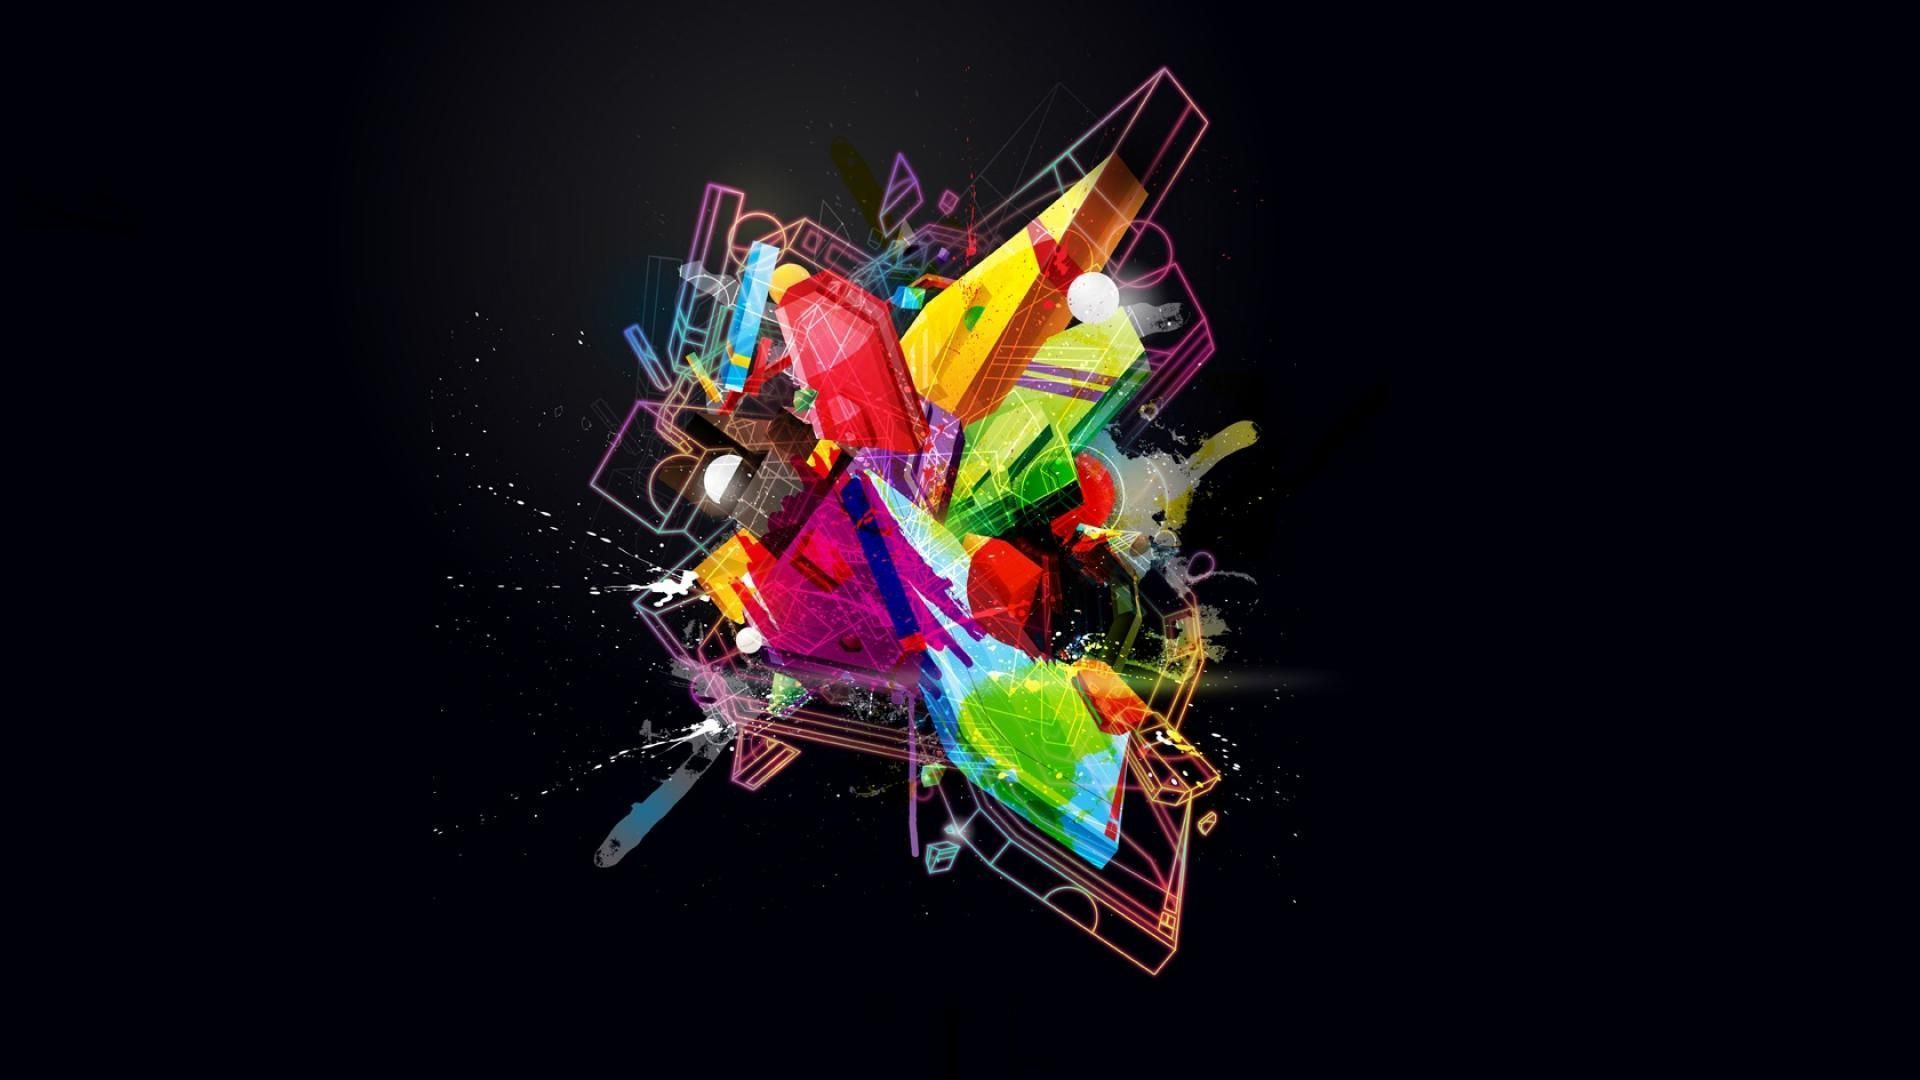 High Graphic Wallpapers   20k, HD High Graphic Backgrounds on ...